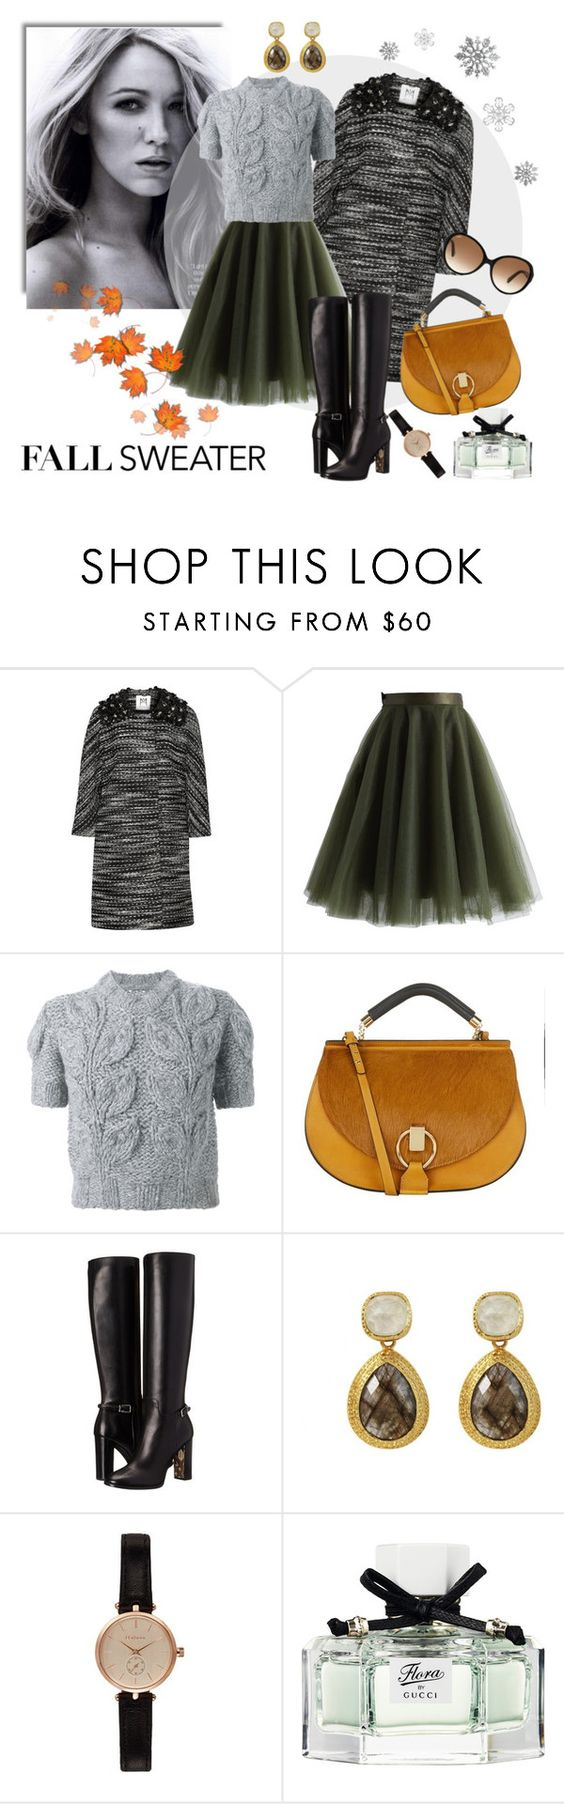 """""""Last days of autumn"""" by molnijax ❤ liked on Polyvore featuring мода, Milly, Chicwish, Maison Margiela, Chloé, Burberry, Barbour, Gucci и Tod's"""